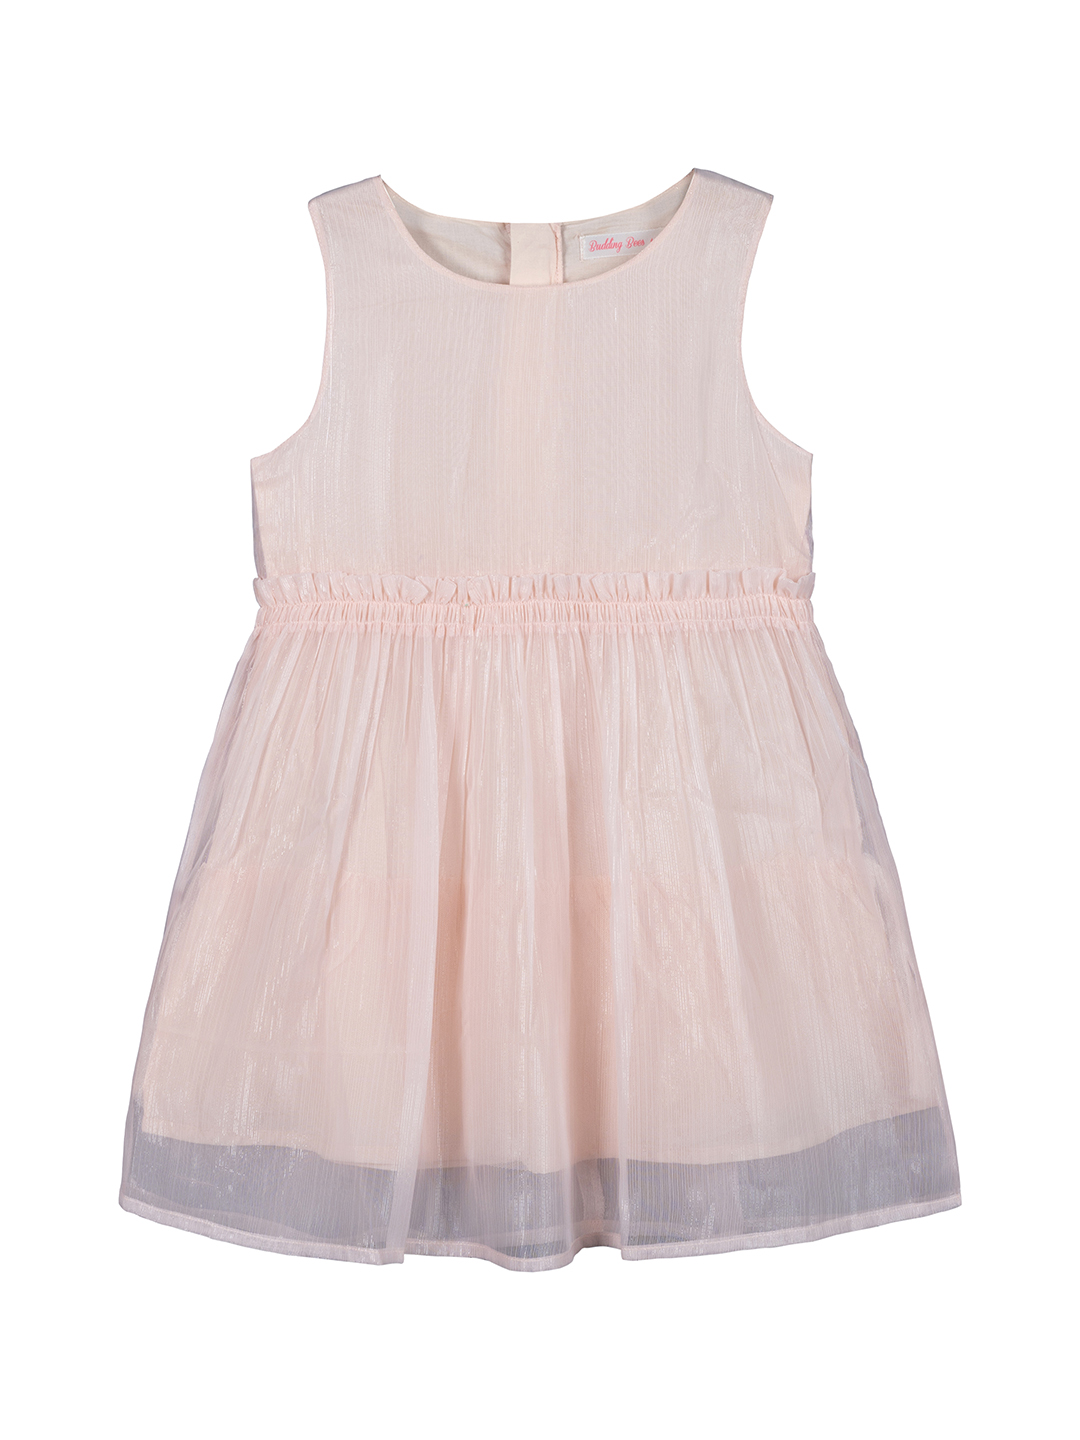 Budding Bees | Budding Bees Girls Solid  Party Dress-Pink